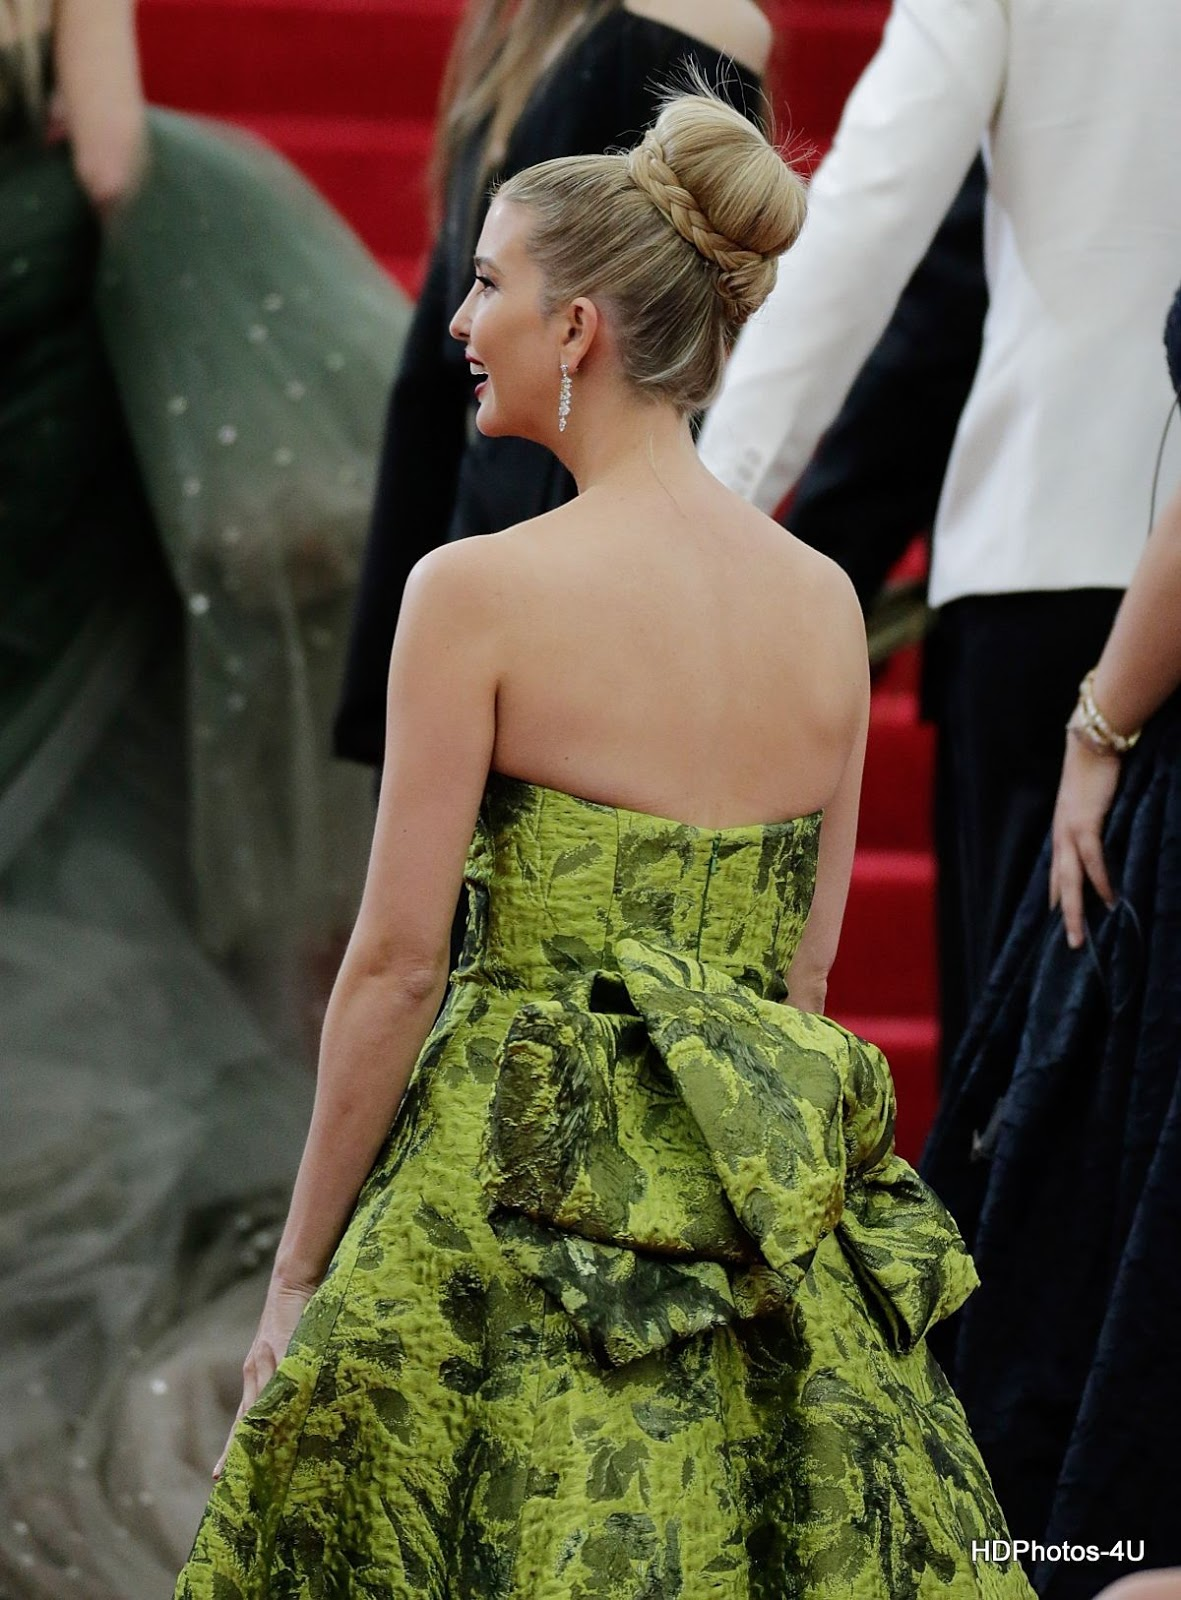 Donald Trump Daughter: HQ Photos & Wallpapers Ivanka Trump at at MET Gala 2014 in Ney York